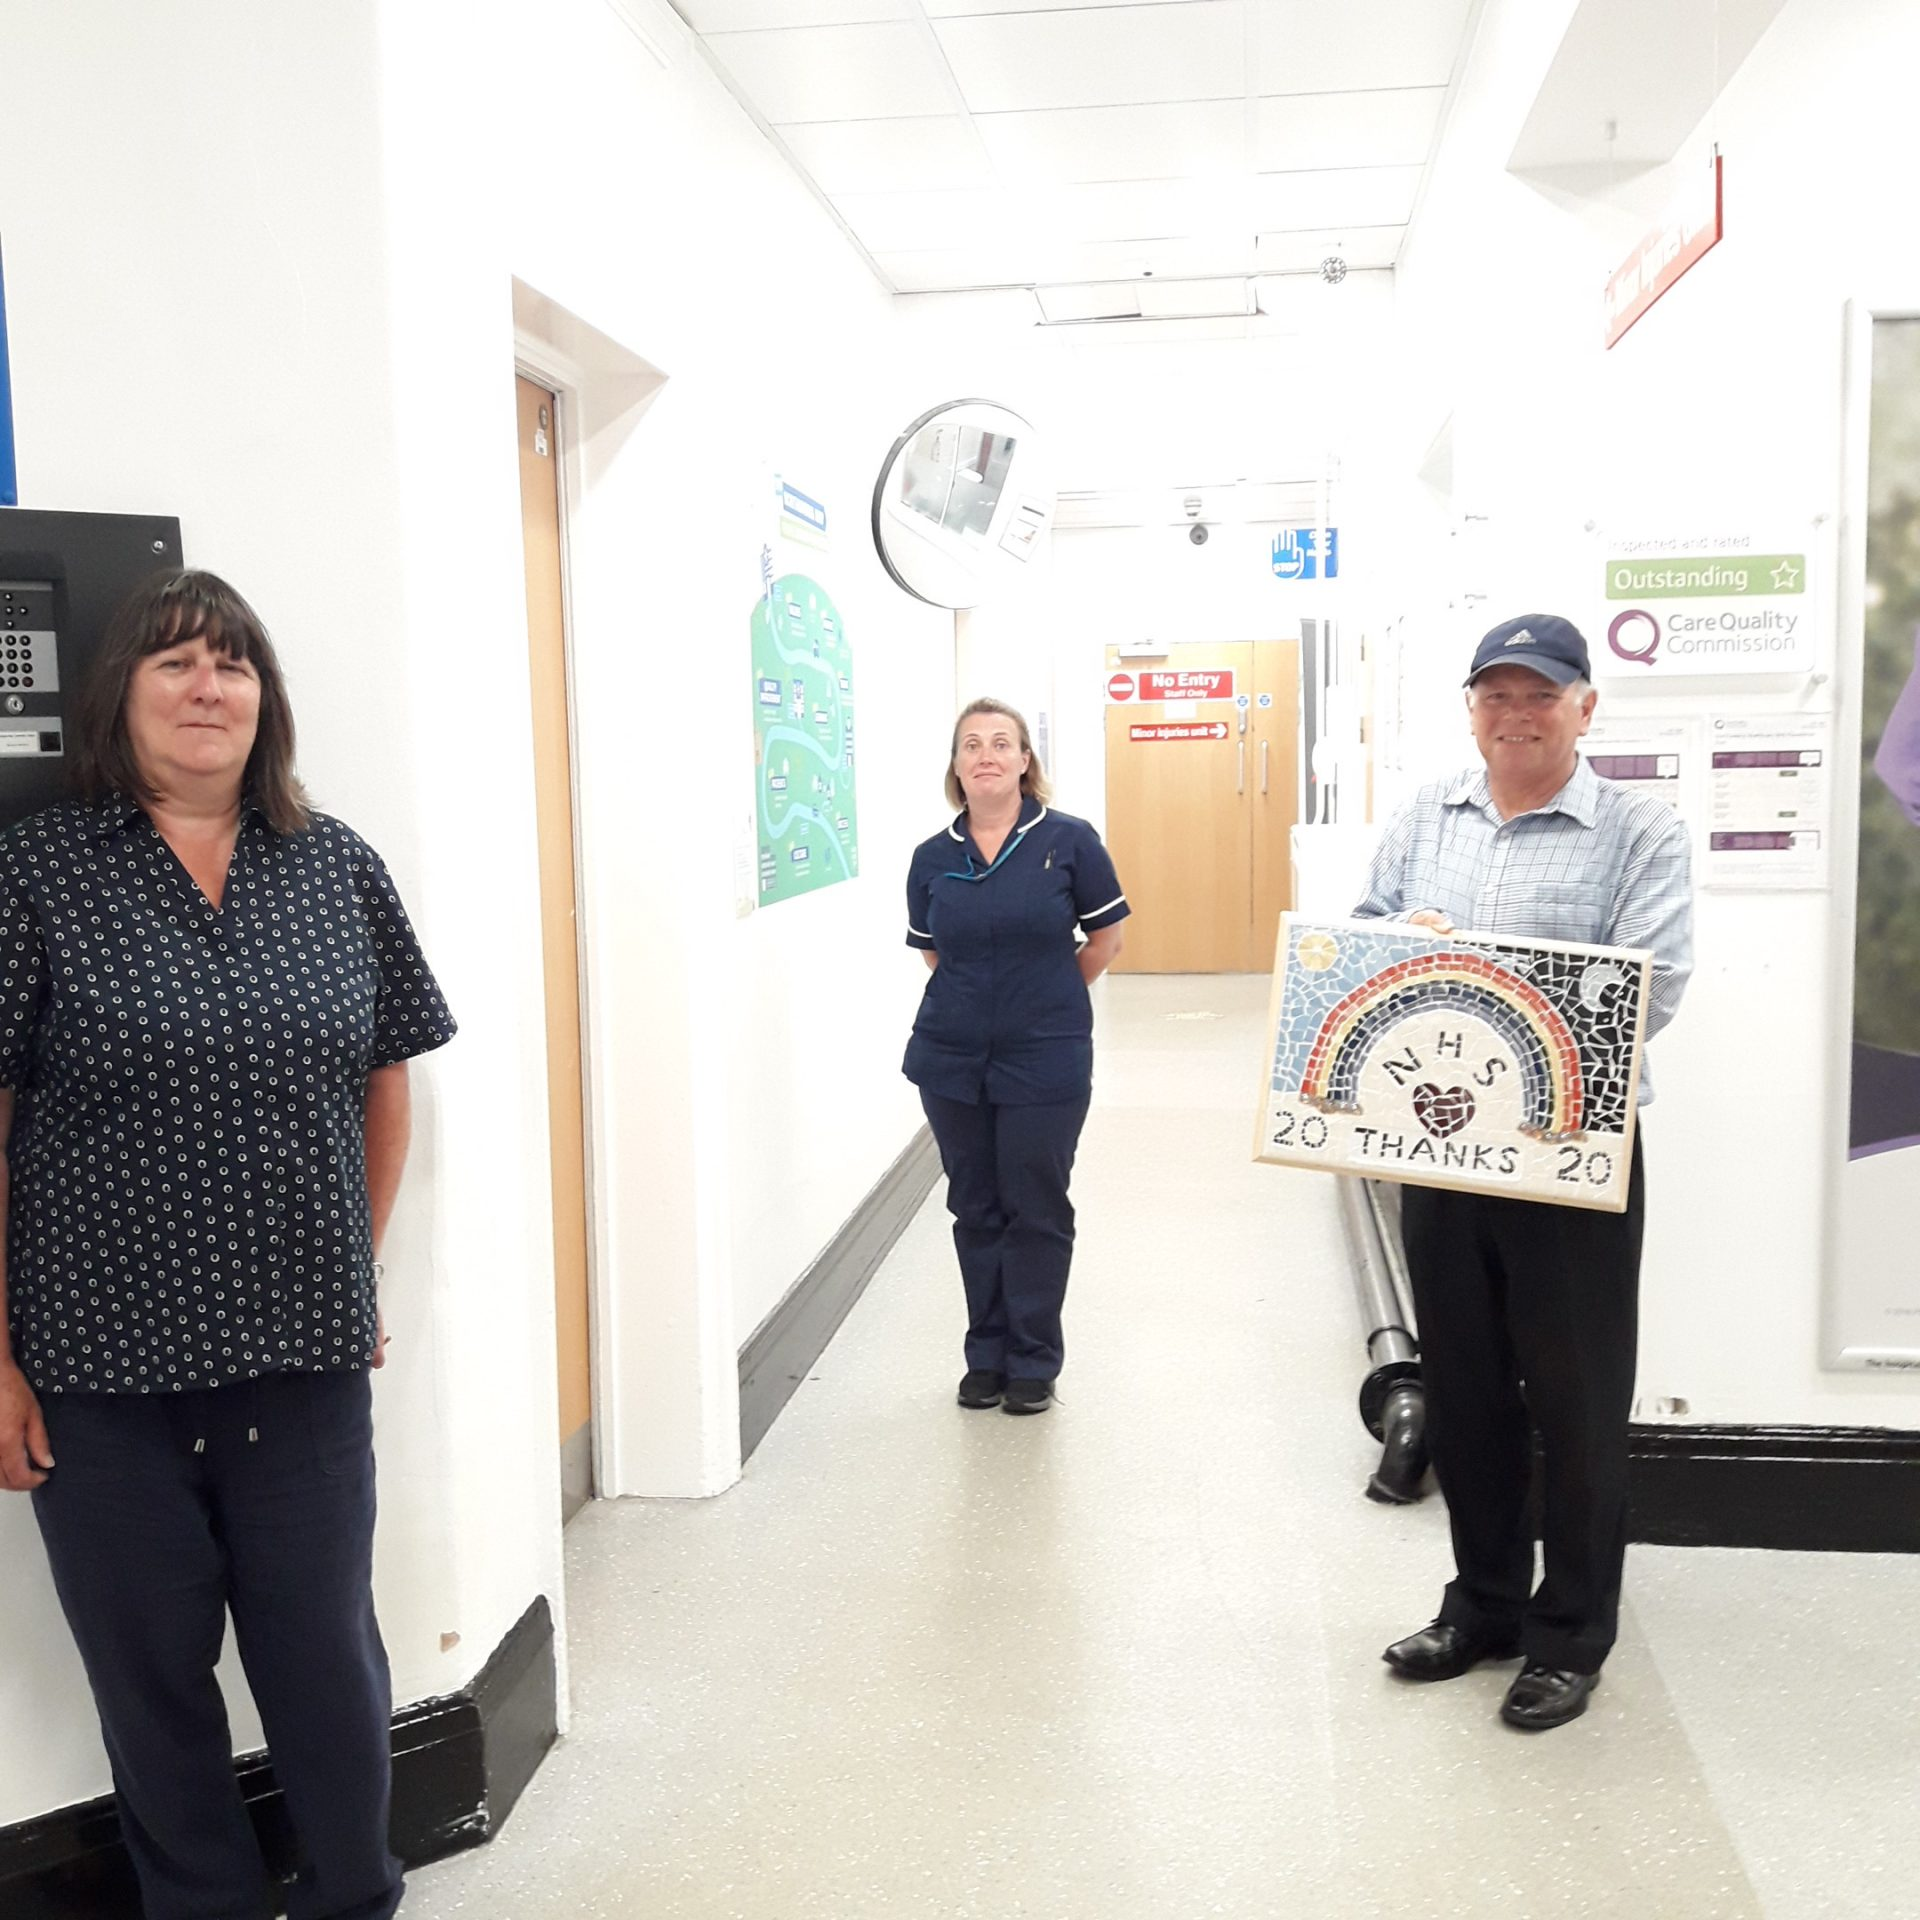 Donation to Alnwick Infirmary to thank NHS staff